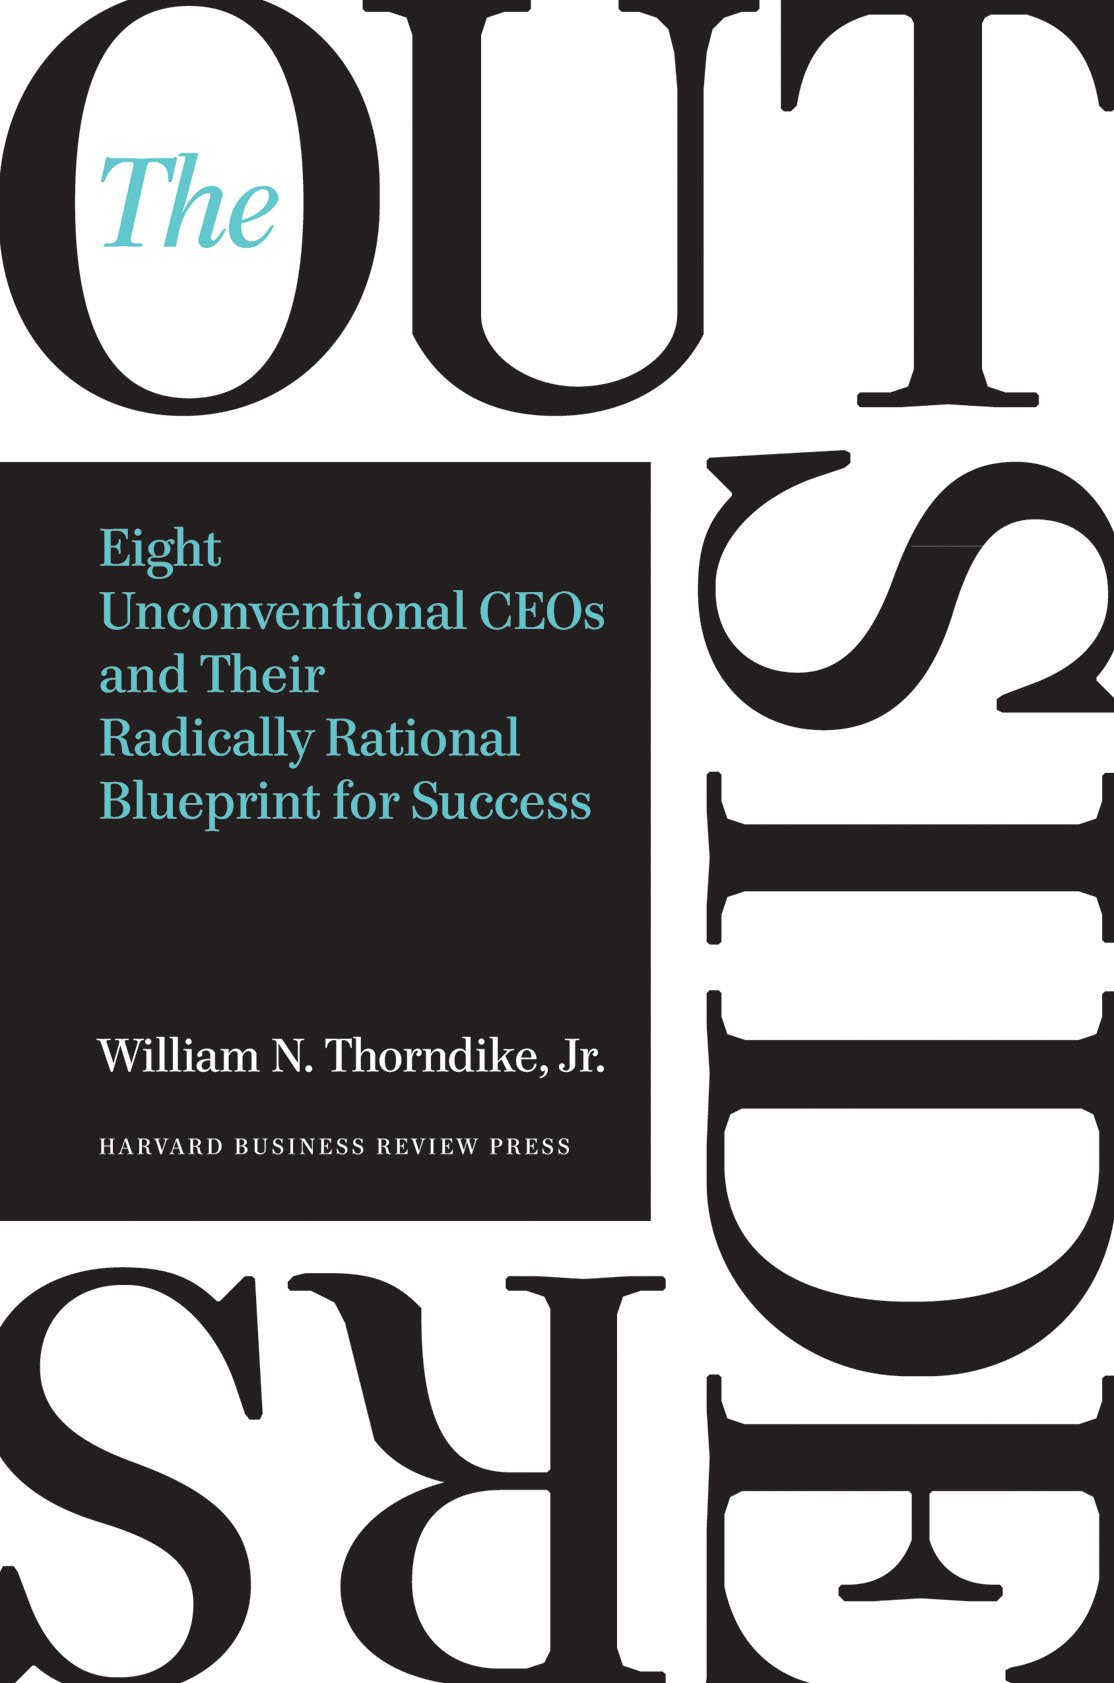 The outsiders eight unconventional ceos and their radically the outsiders eight unconventional ceos and their radically rational blueprint for success amazon william n thorndike libros en idiomas extranjeros malvernweather Image collections